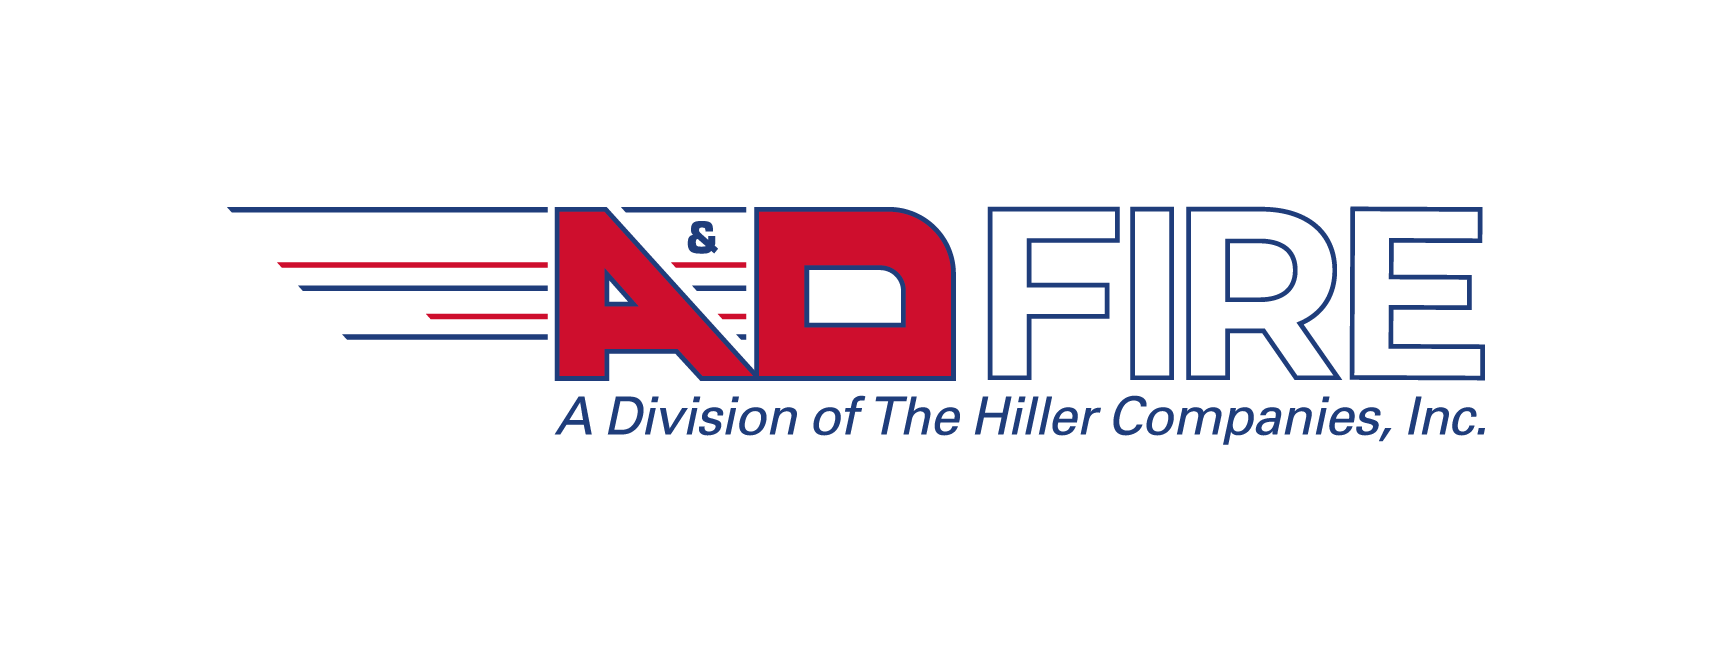 The Hiller Companies purchases A&D Fire headquartered in San Diego, California.